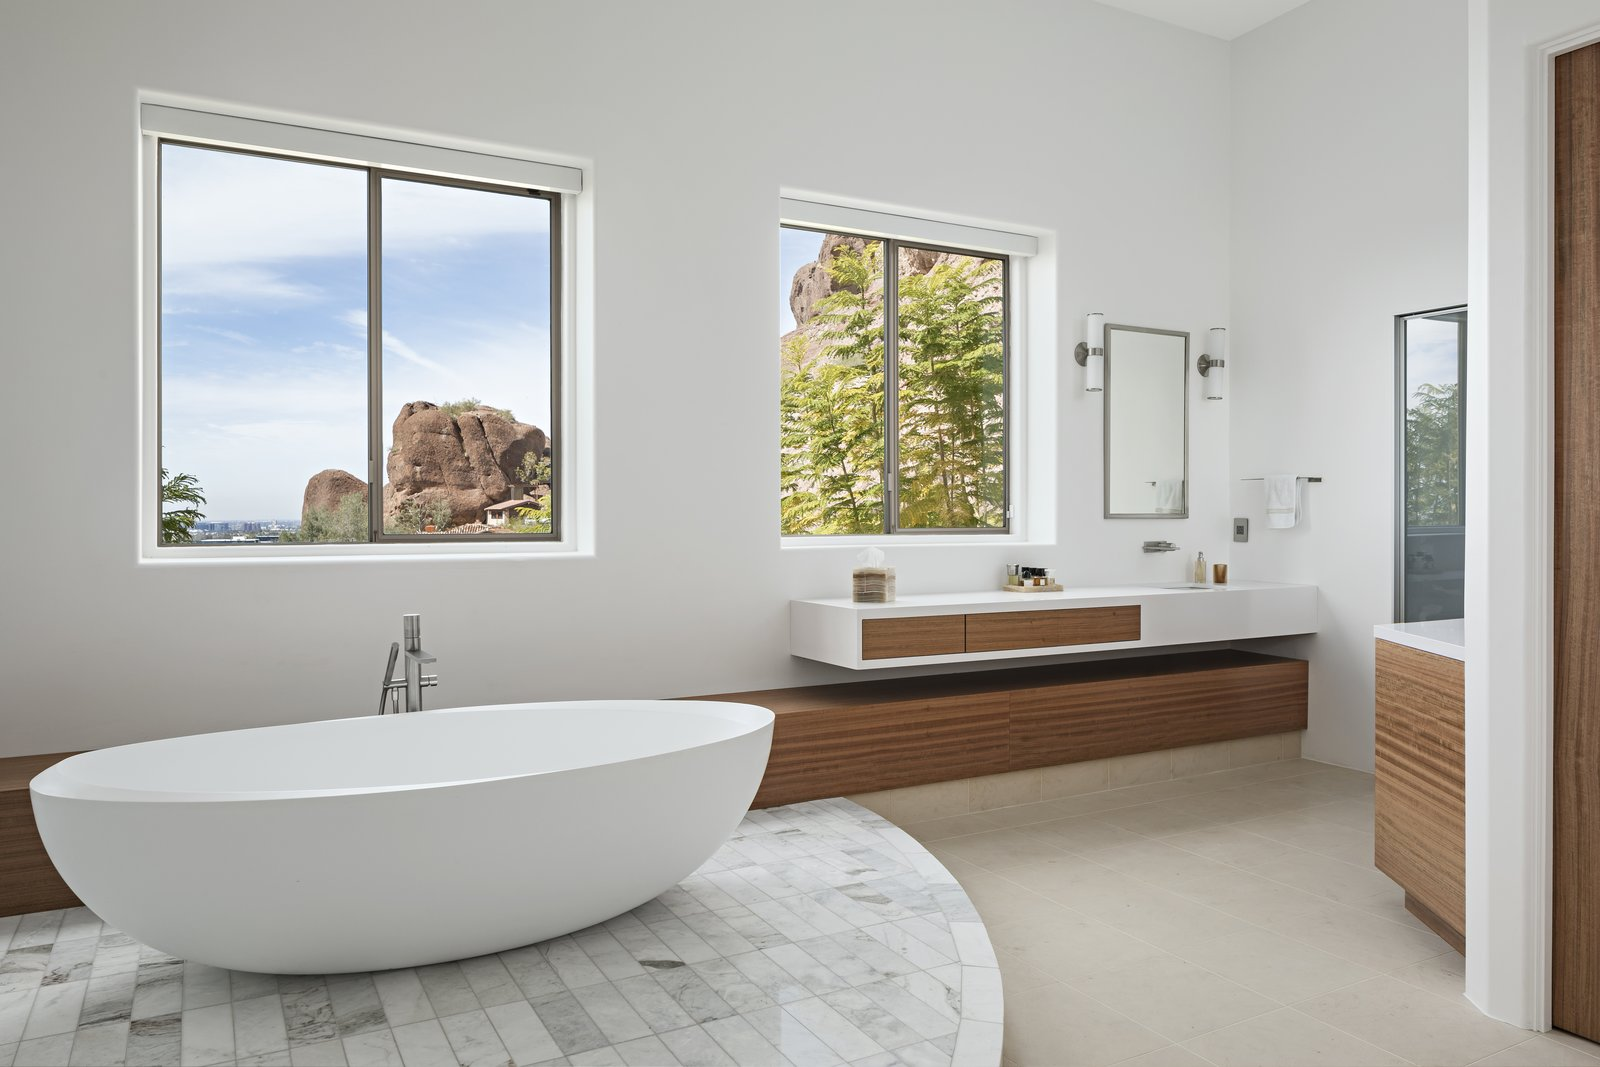 Freestanding tub and custom vanities with views of Camelback Mountain